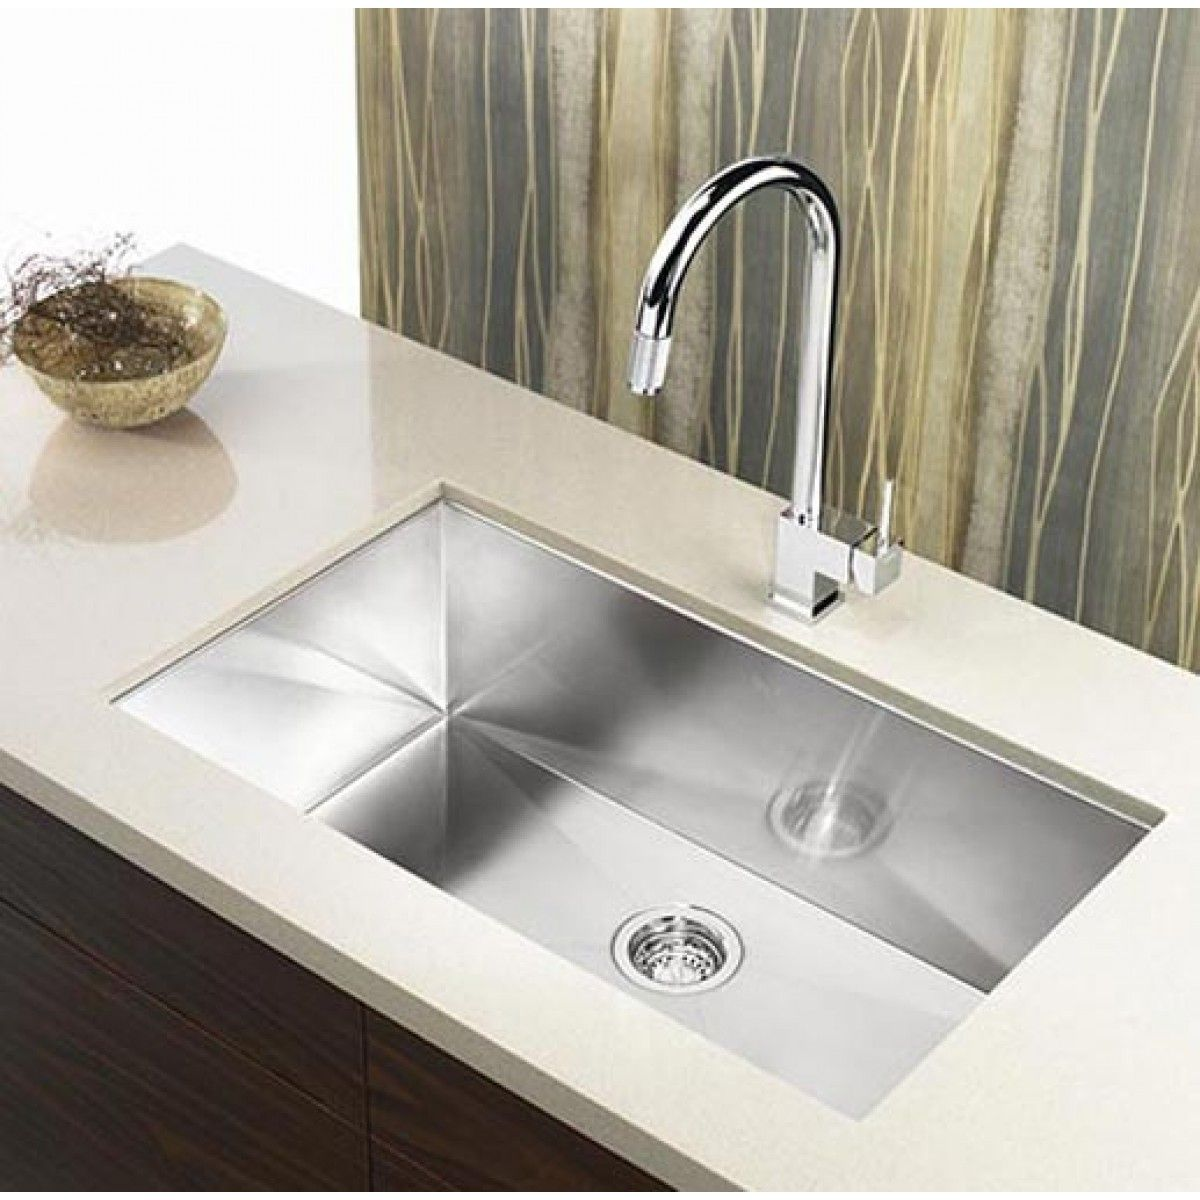 36 Inch Stainless Steel Undermount Single Bowl Kitchen Sink Zero